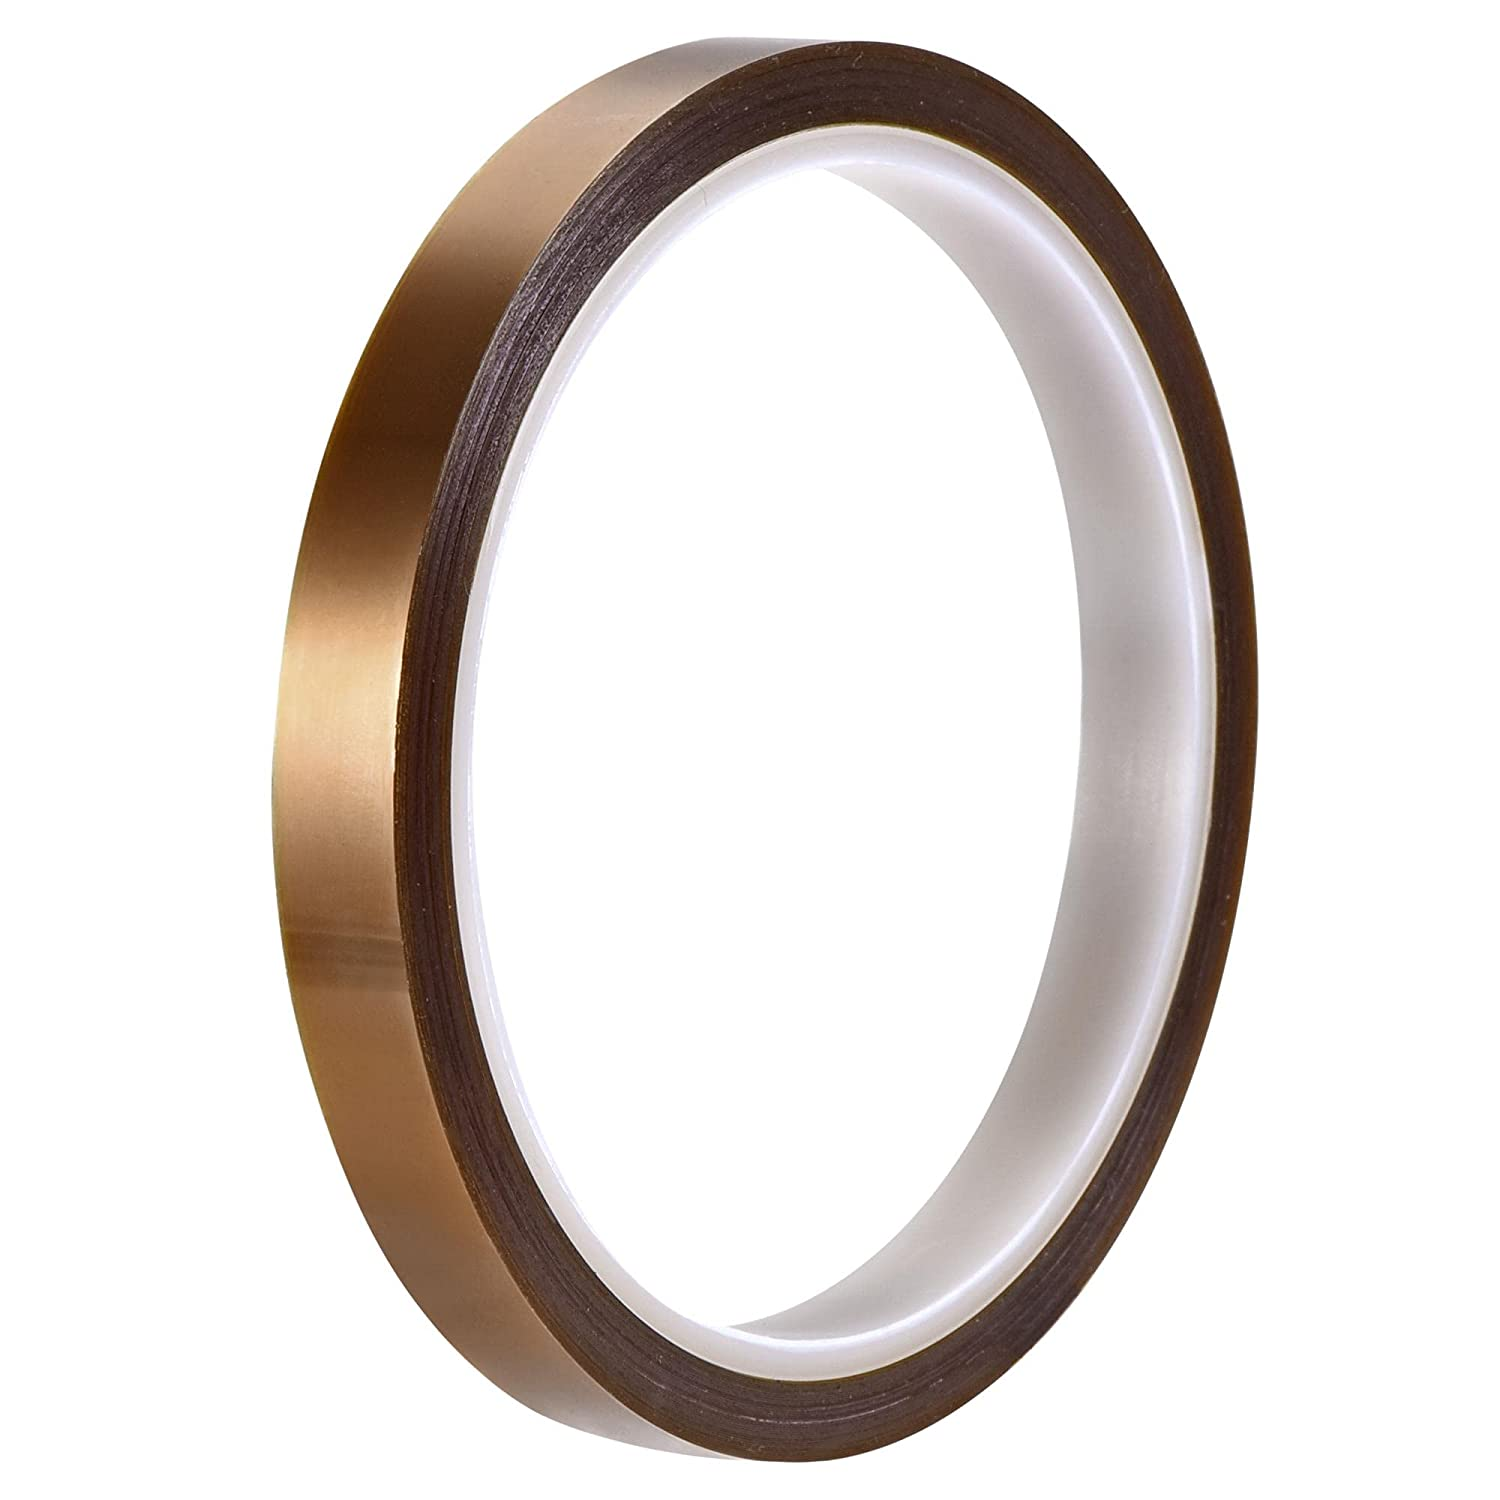 uxcell High Temperature Tape 25 64 New arrival Su 32ft x Factory outlet Resistant Heat Inch